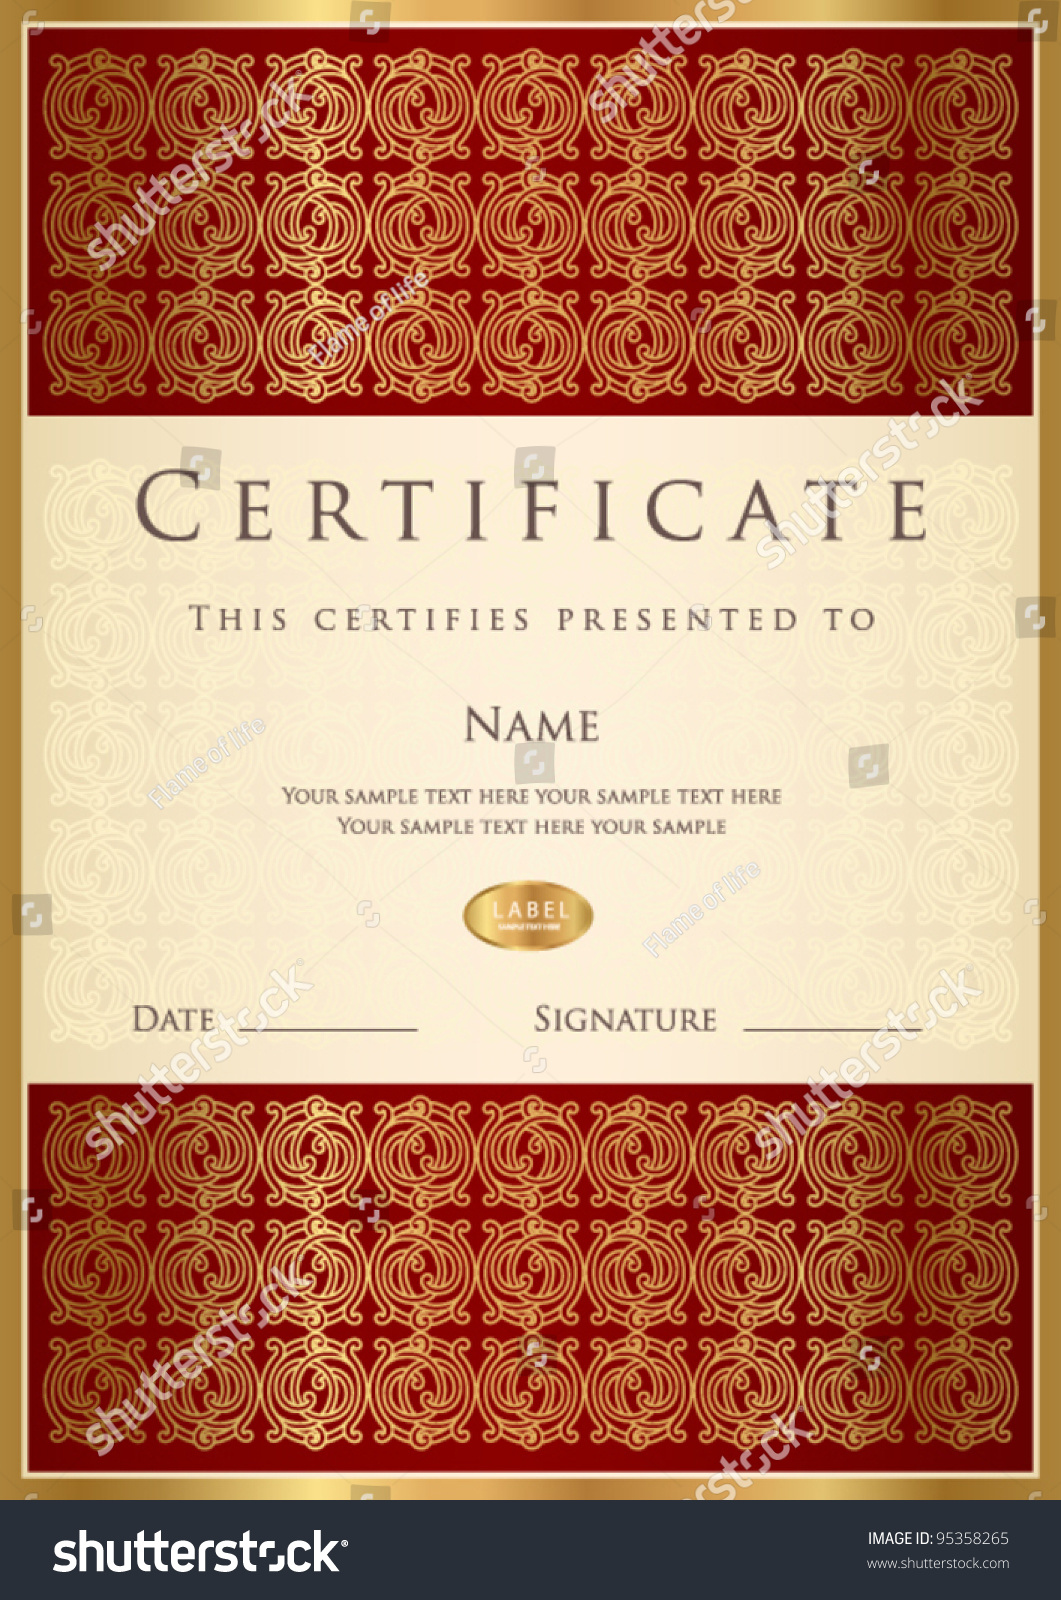 vertical red certificate of completion template with